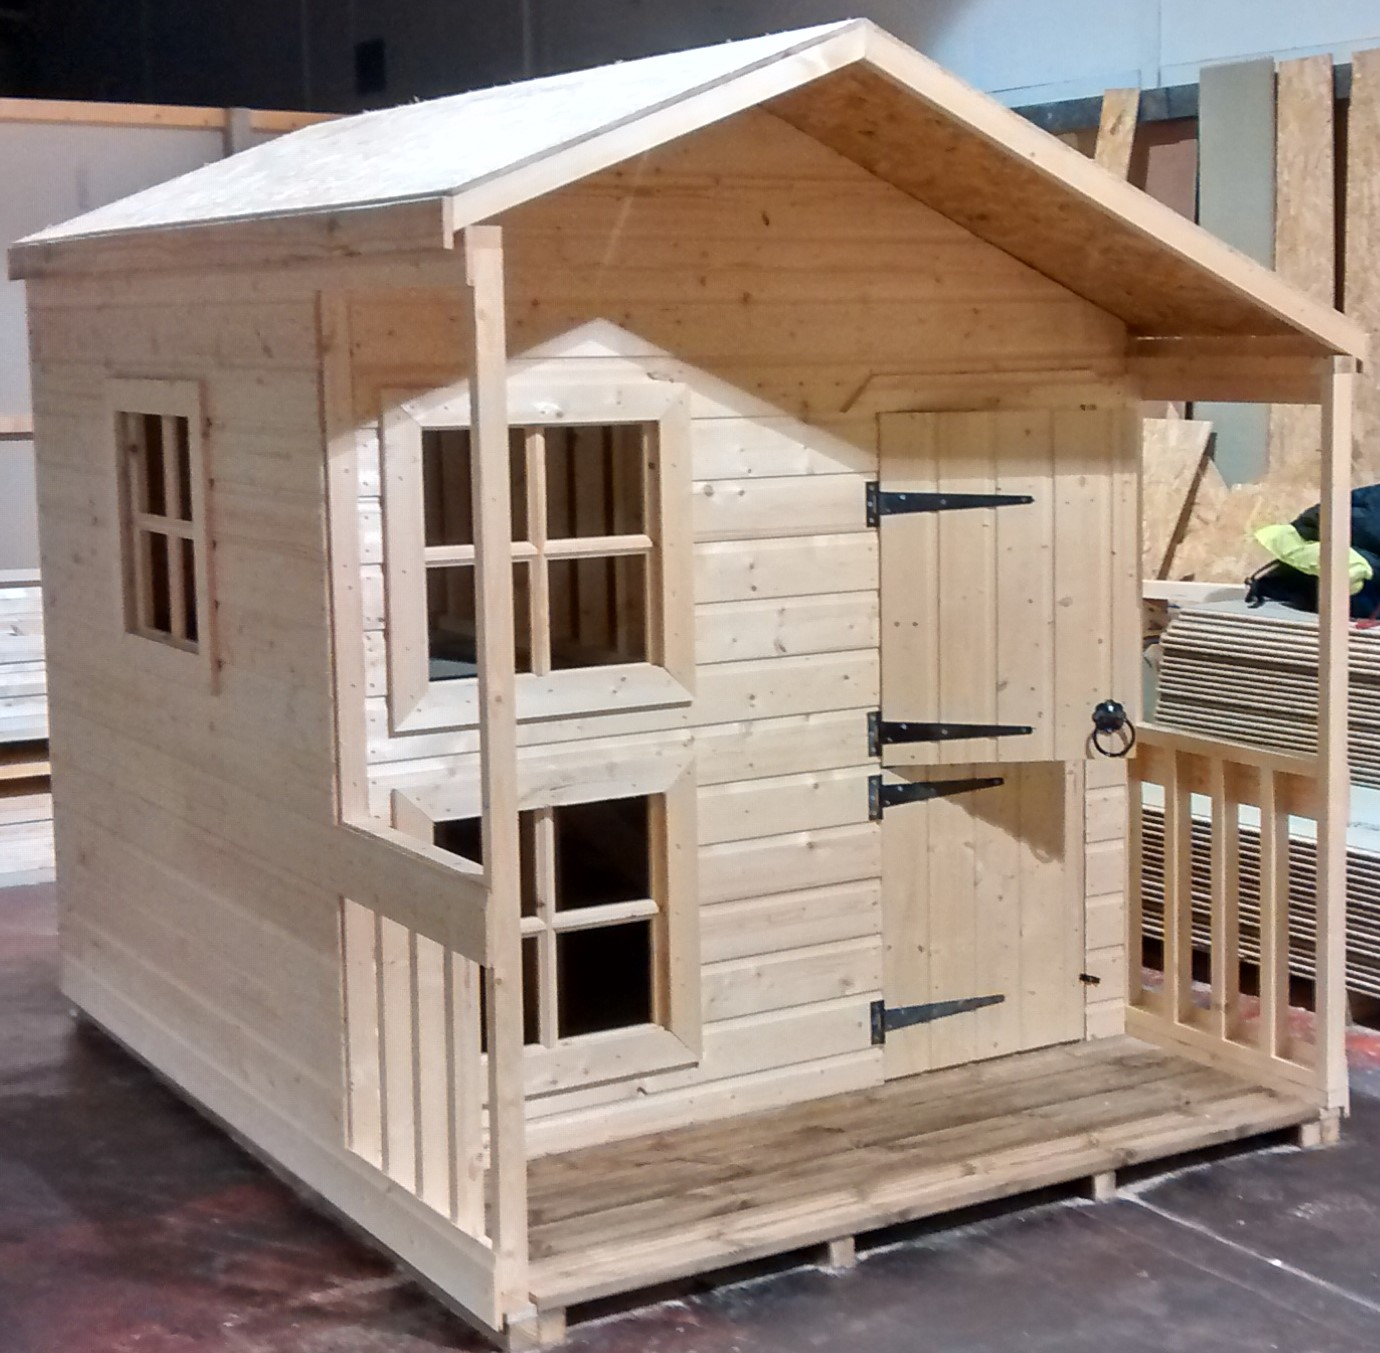 Two Storey Playhouse with Veranda (8' x 6')